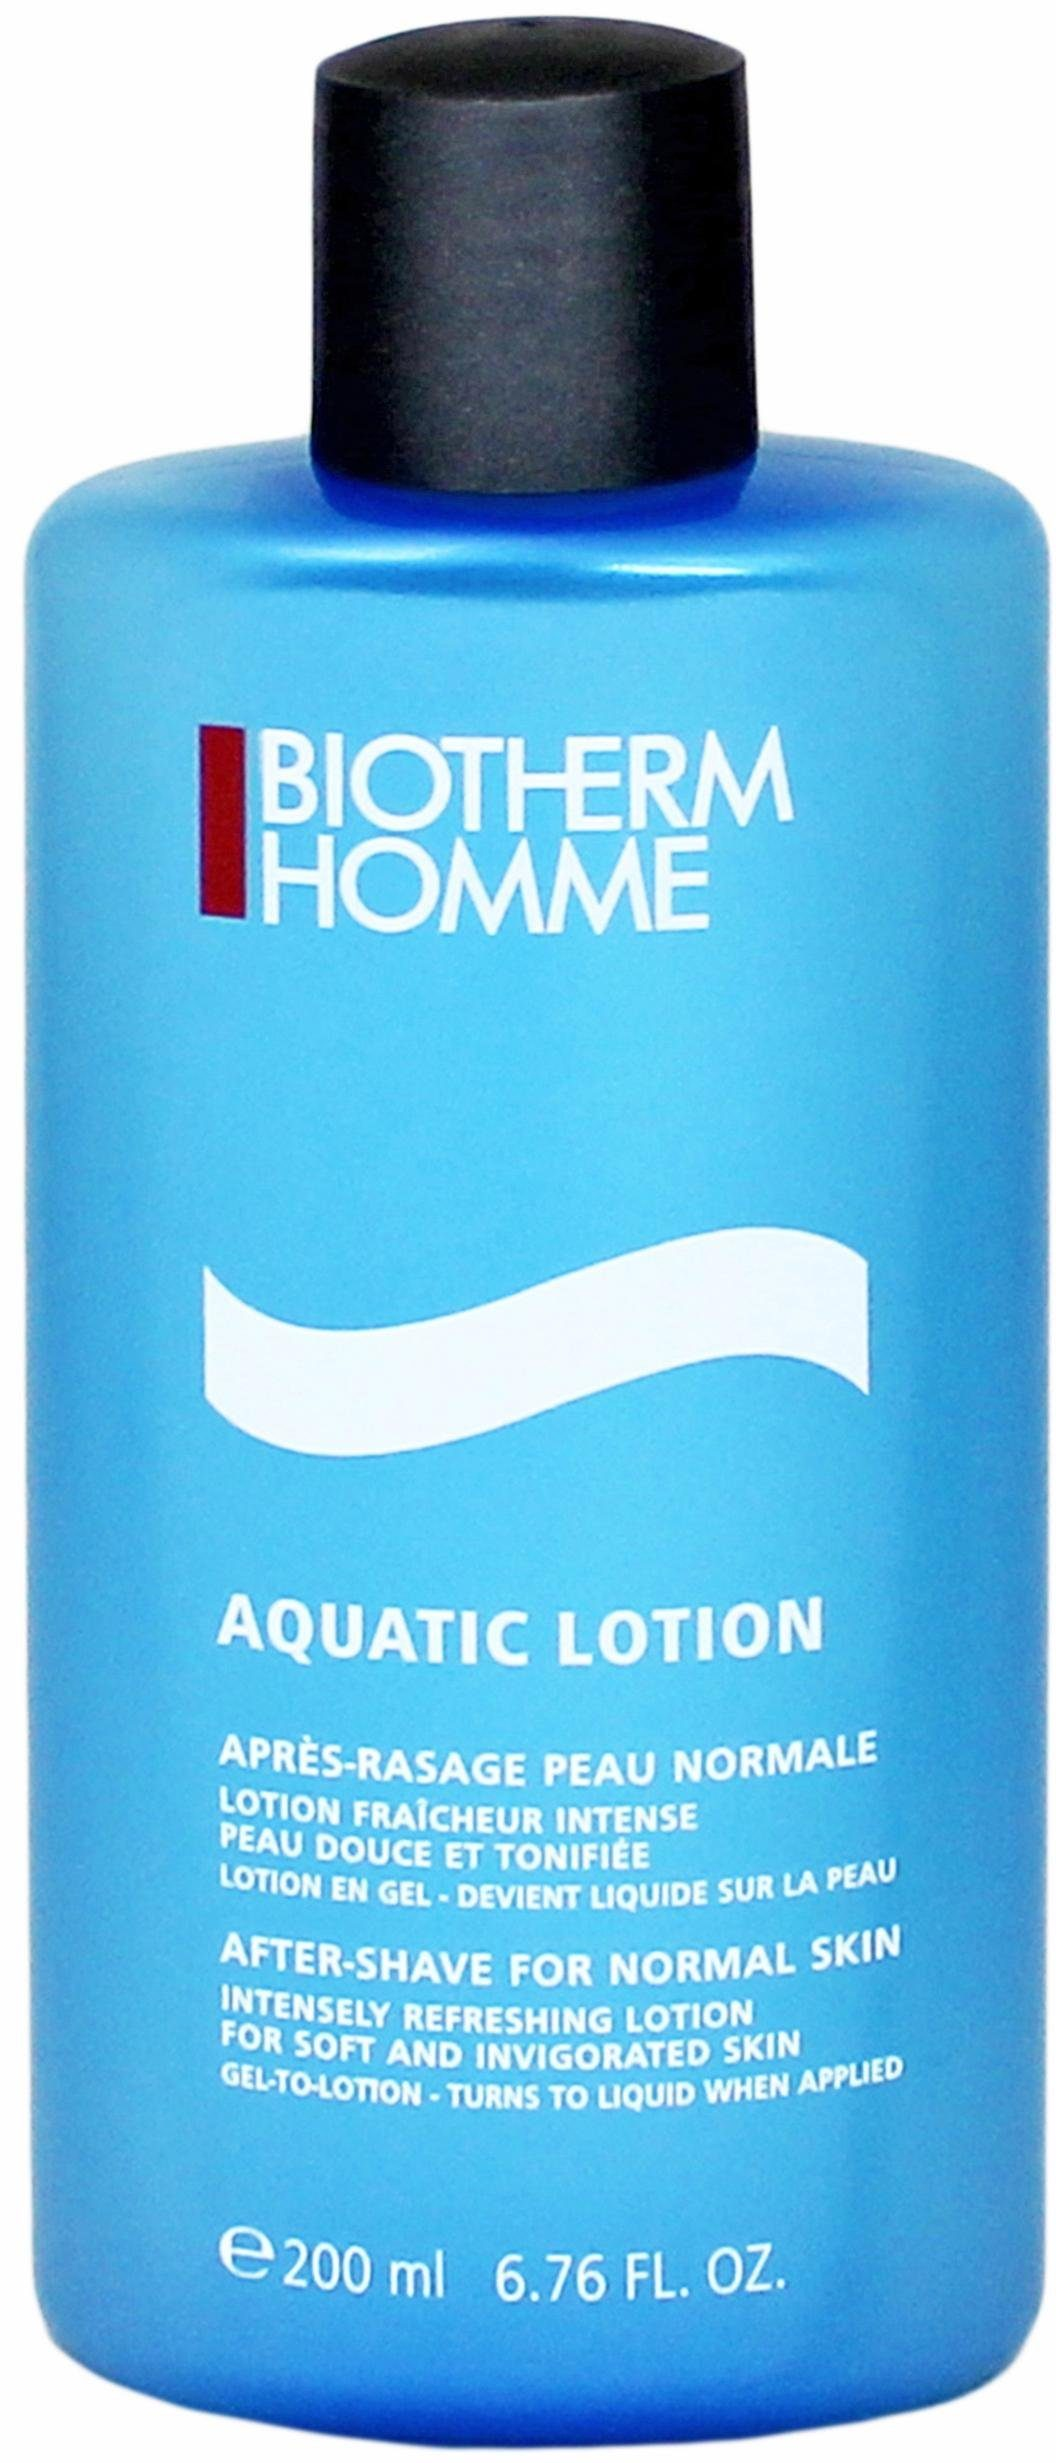 Biotherm Homme, »Aquatic Lotion«, Aftershave